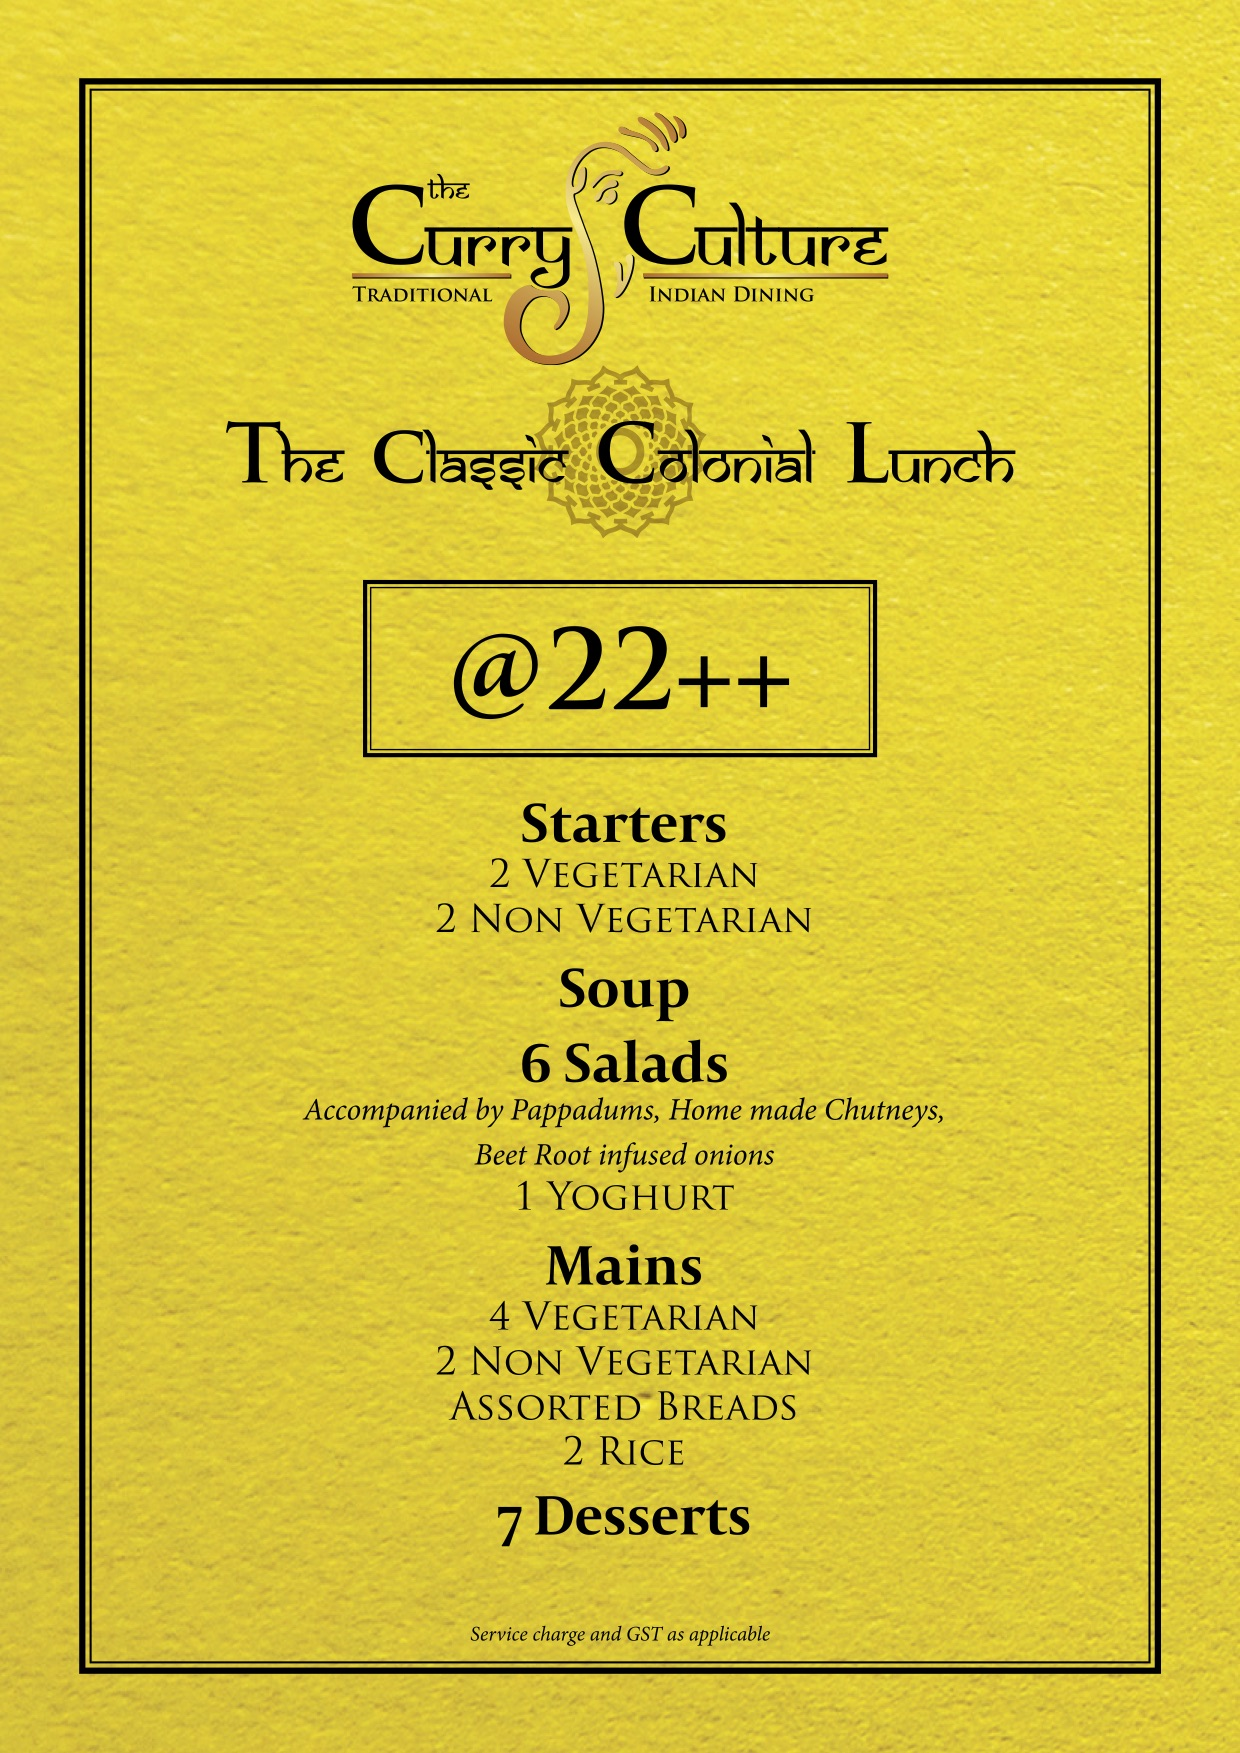 The Curry Culture - Set Lunch Menu - TREAT